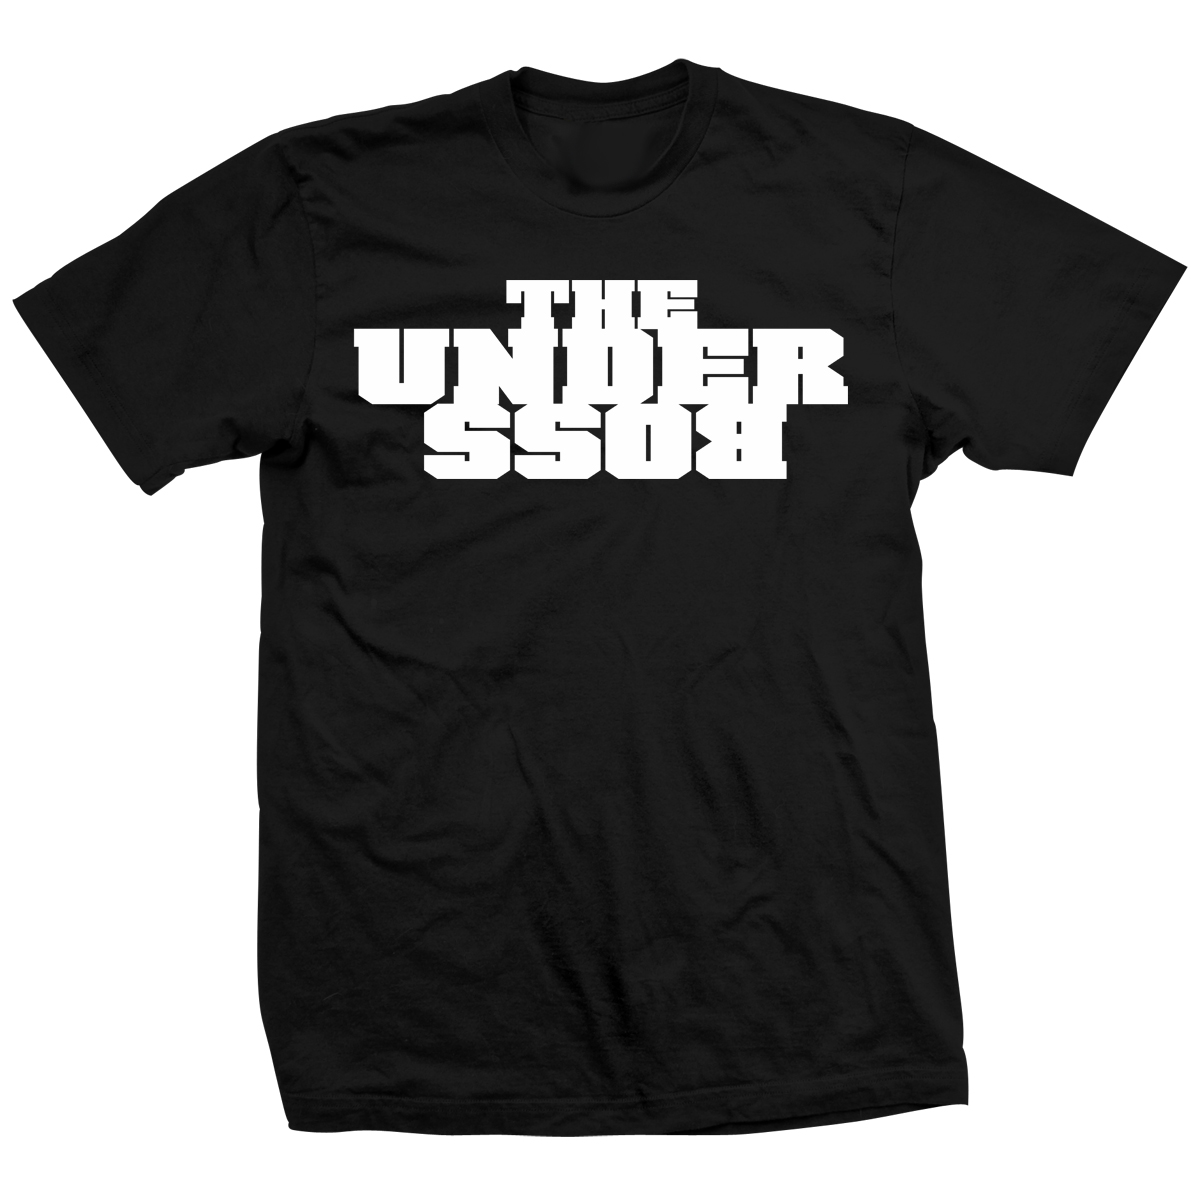 Bad Luck Fale Real Boss T-shirt